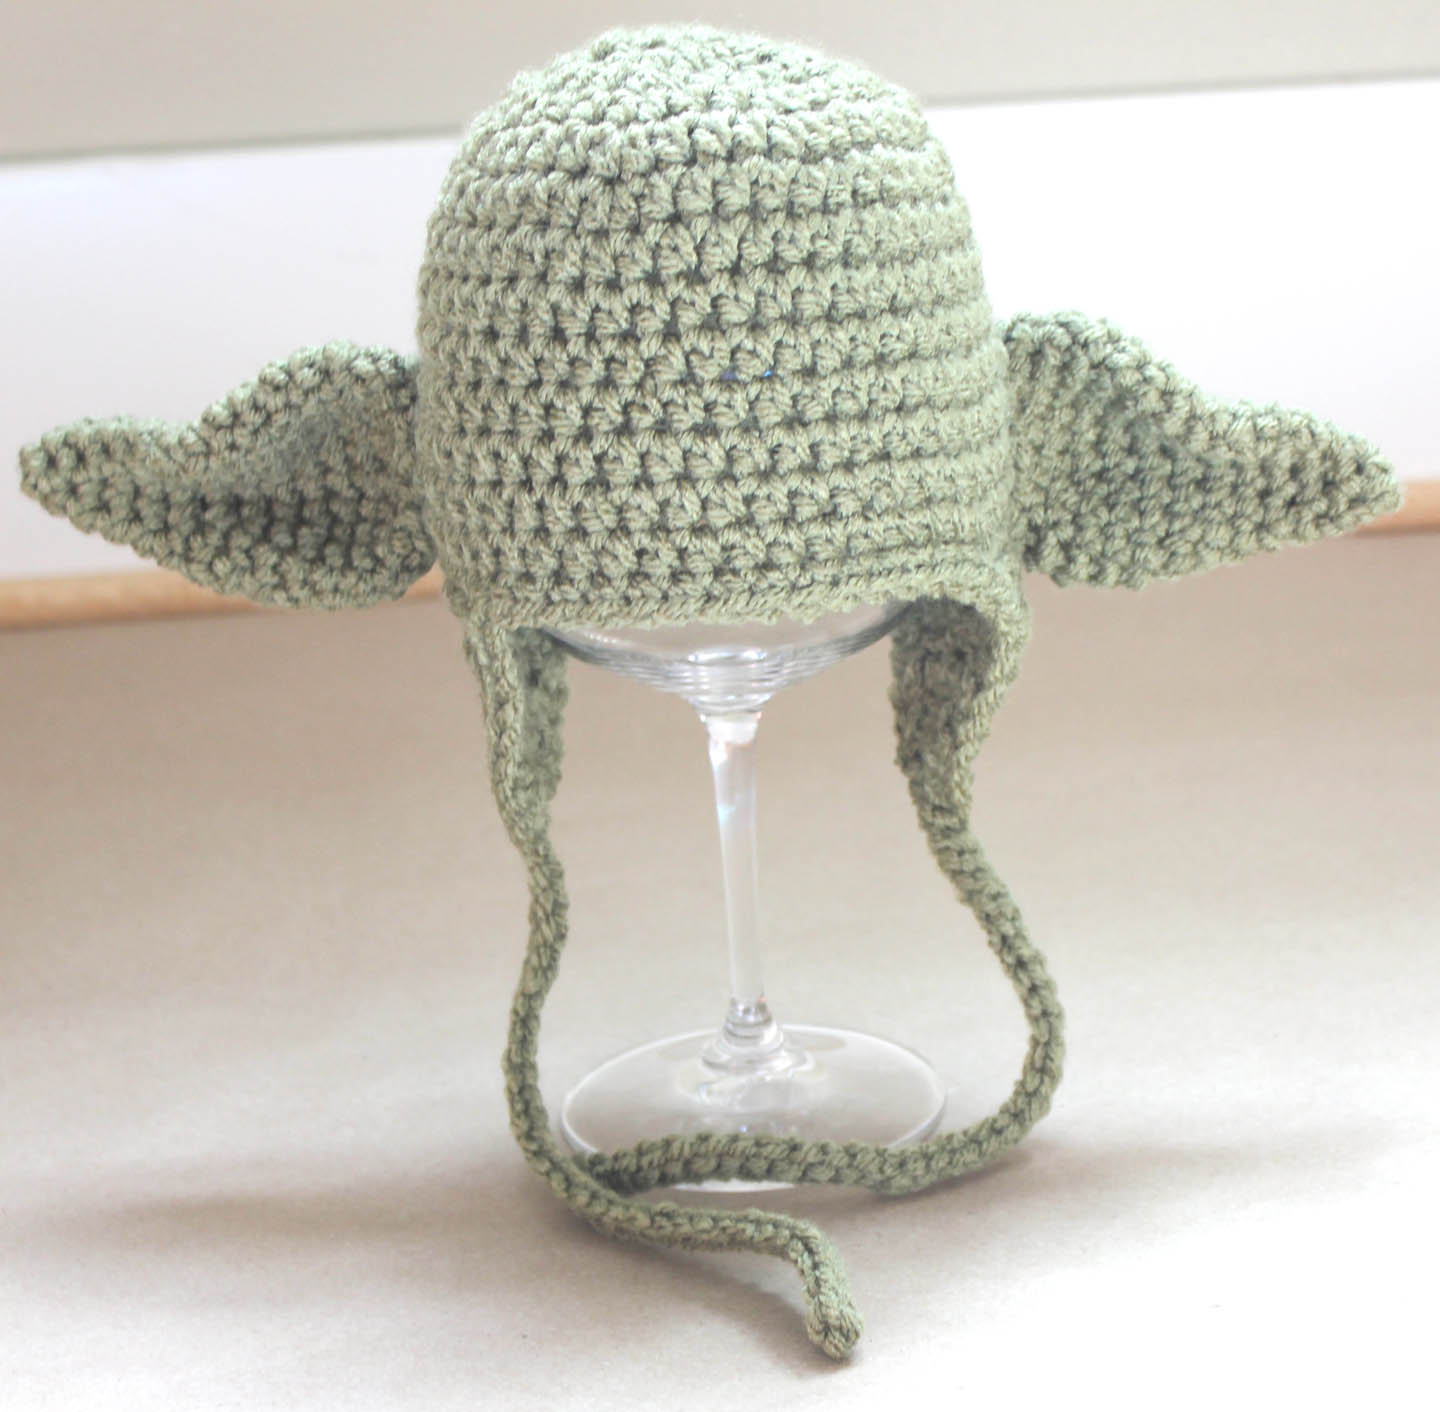 Crochet yoda hat repeat crafter me no playable sources found bankloansurffo Choice Image